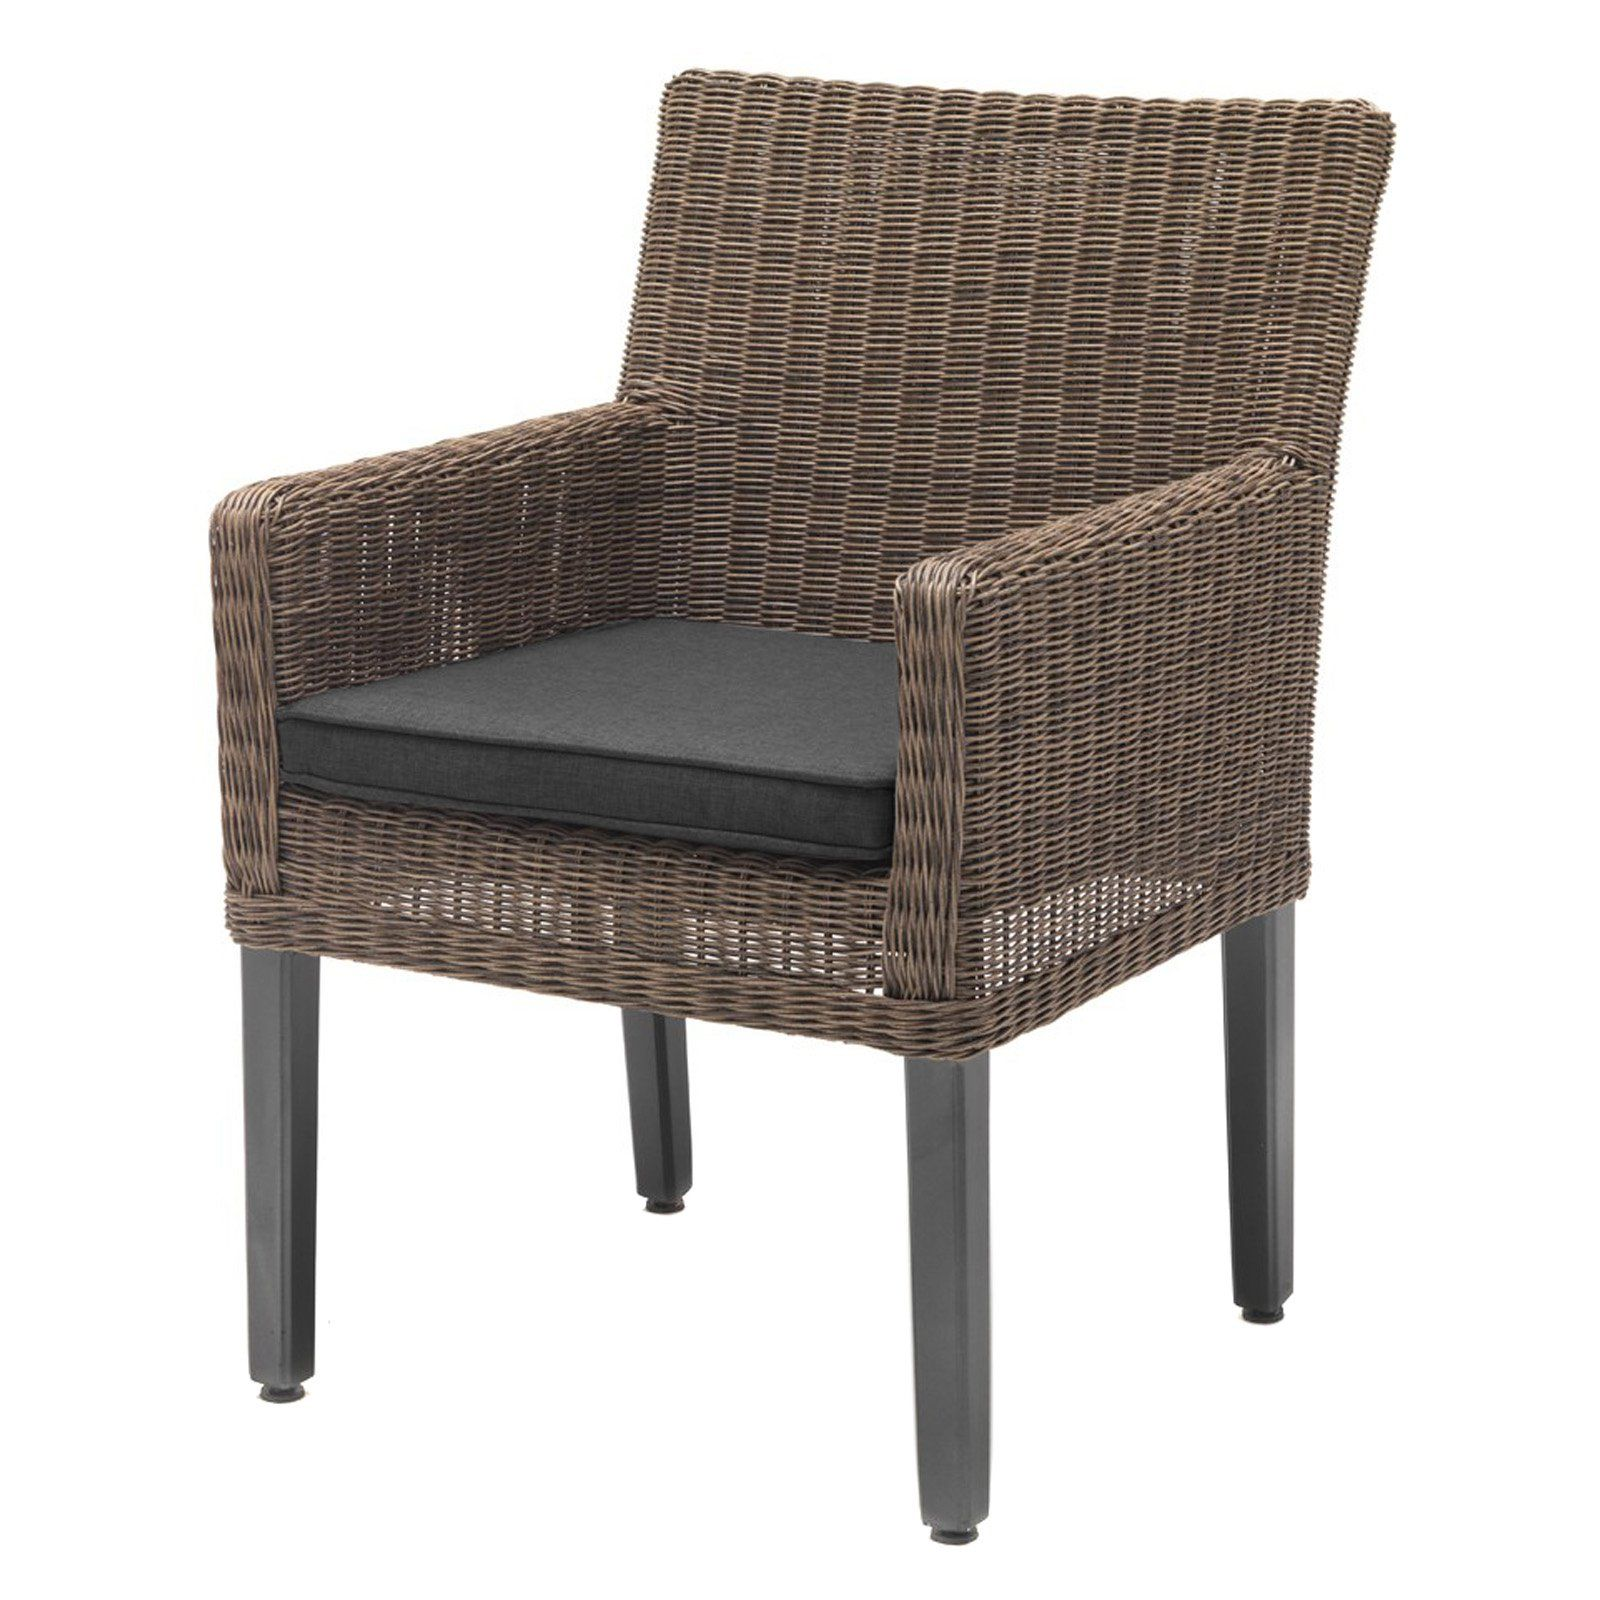 Outdoor kettler bretange wicker patio lounge chair canvas coal